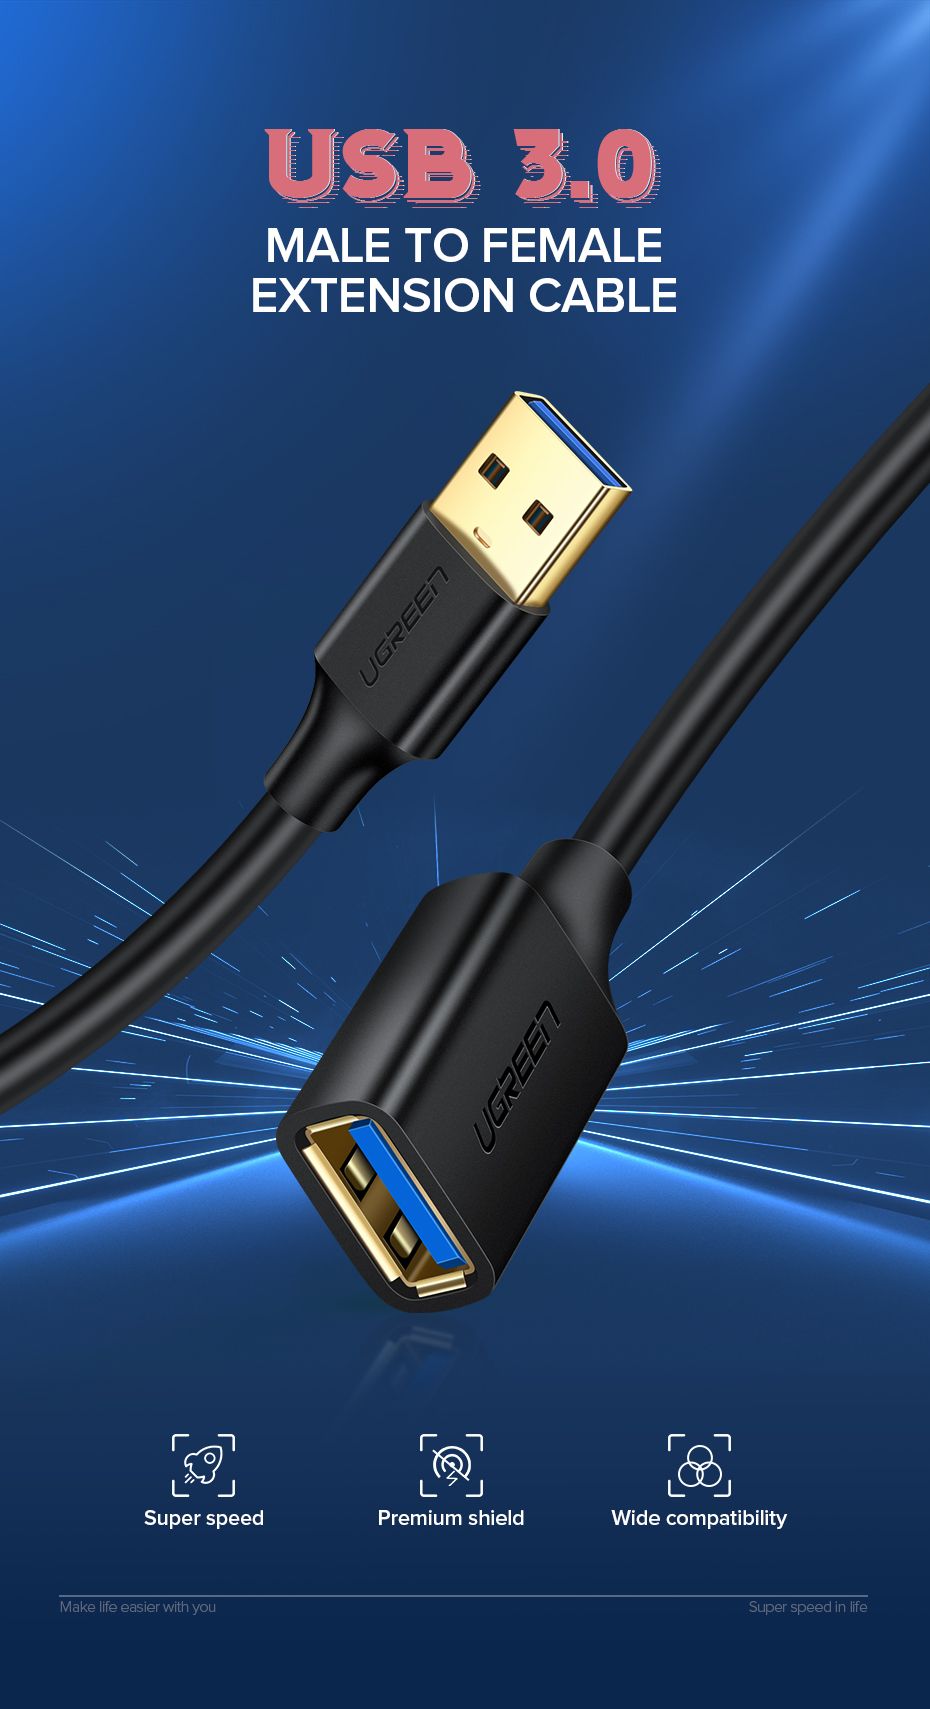 HTB1c2RATNjaK1RjSZFAq6zdLFXaA Ugreen USB Extension Cable USB 3.0 Cable for Smart TV PS4 Xbox One SSD USB3.0 2.0 to Extender Data Cord Mini USB Extension Cable